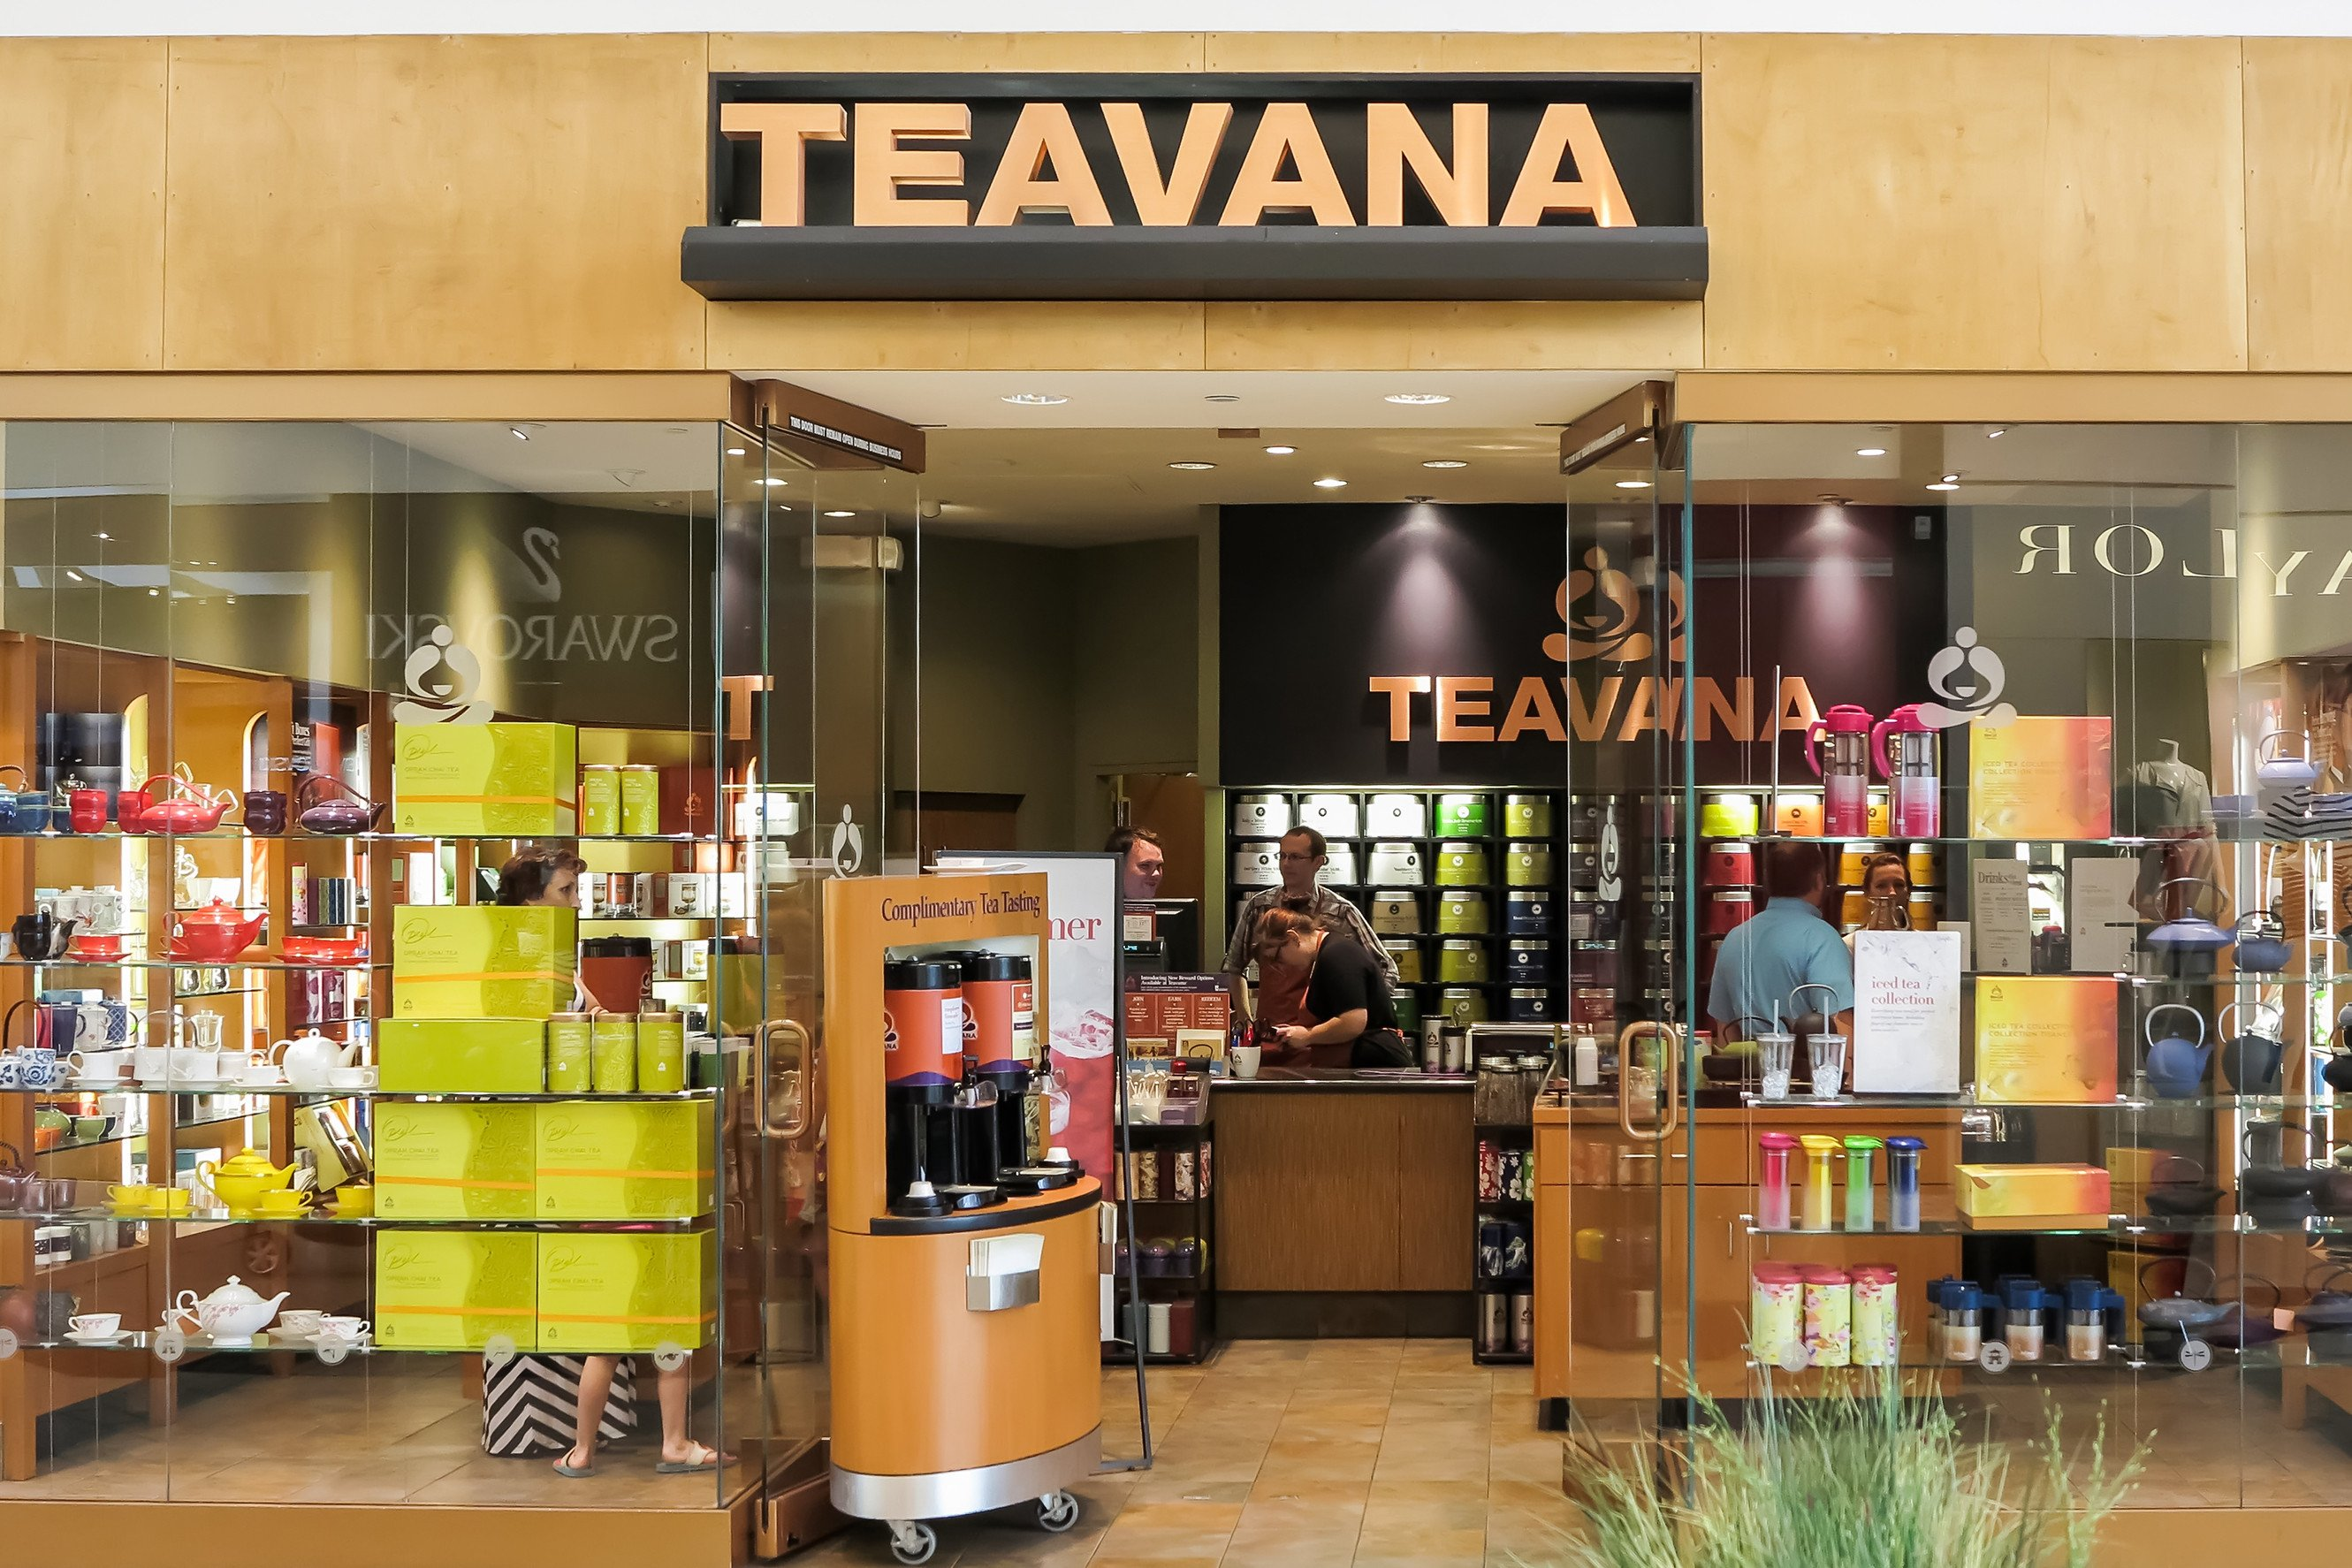 Starbucks settles suit with mall giant over Teavana stores